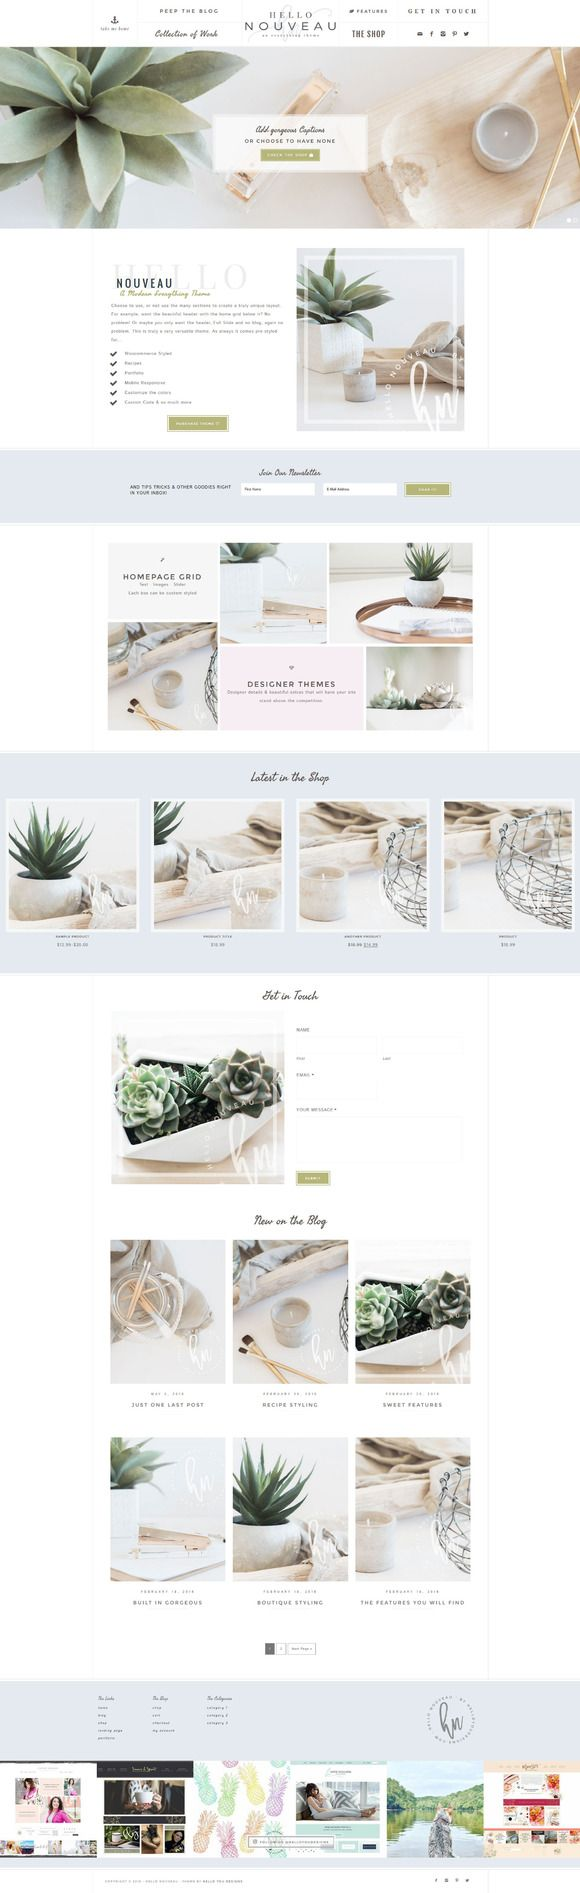 Hello Nouveau Wordpress Genesis by Hello You Designs on @creativemarket